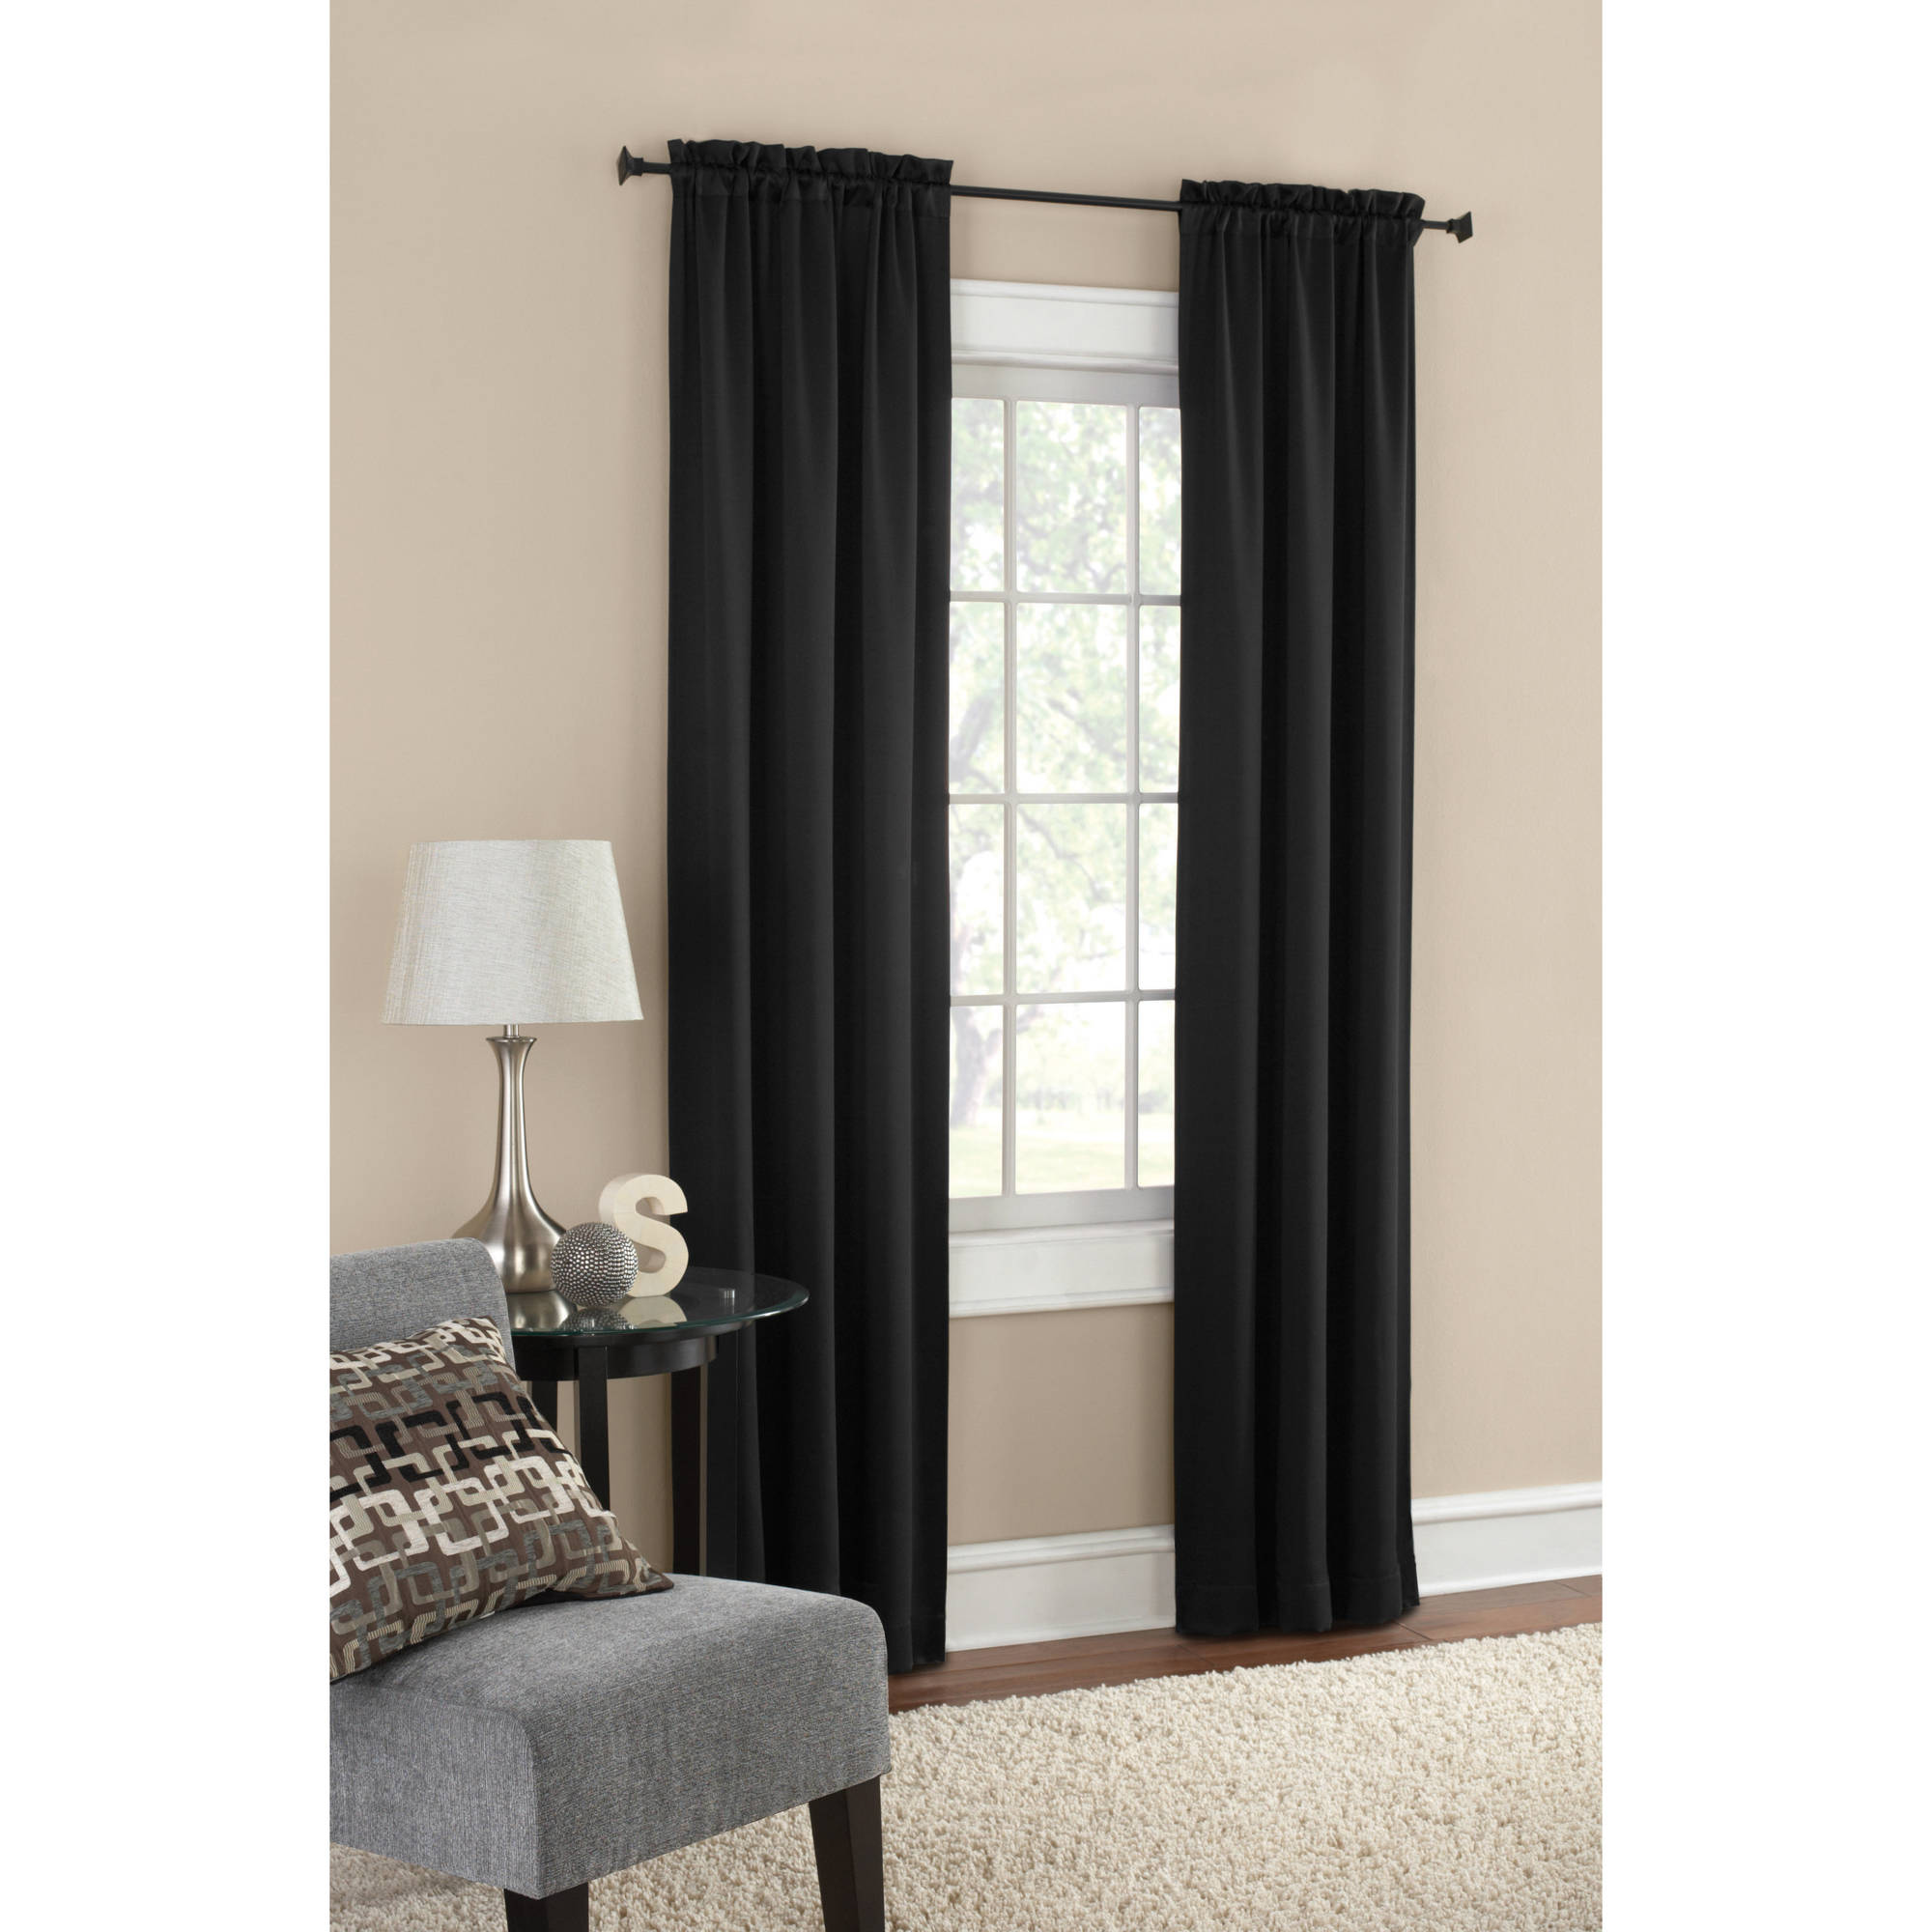 Cheap Blackout Curtains for Inspiring Home Decorating Ideas: Drapes With Blackout Lining | Low Priced Curtains | Cheap Blackout Curtains